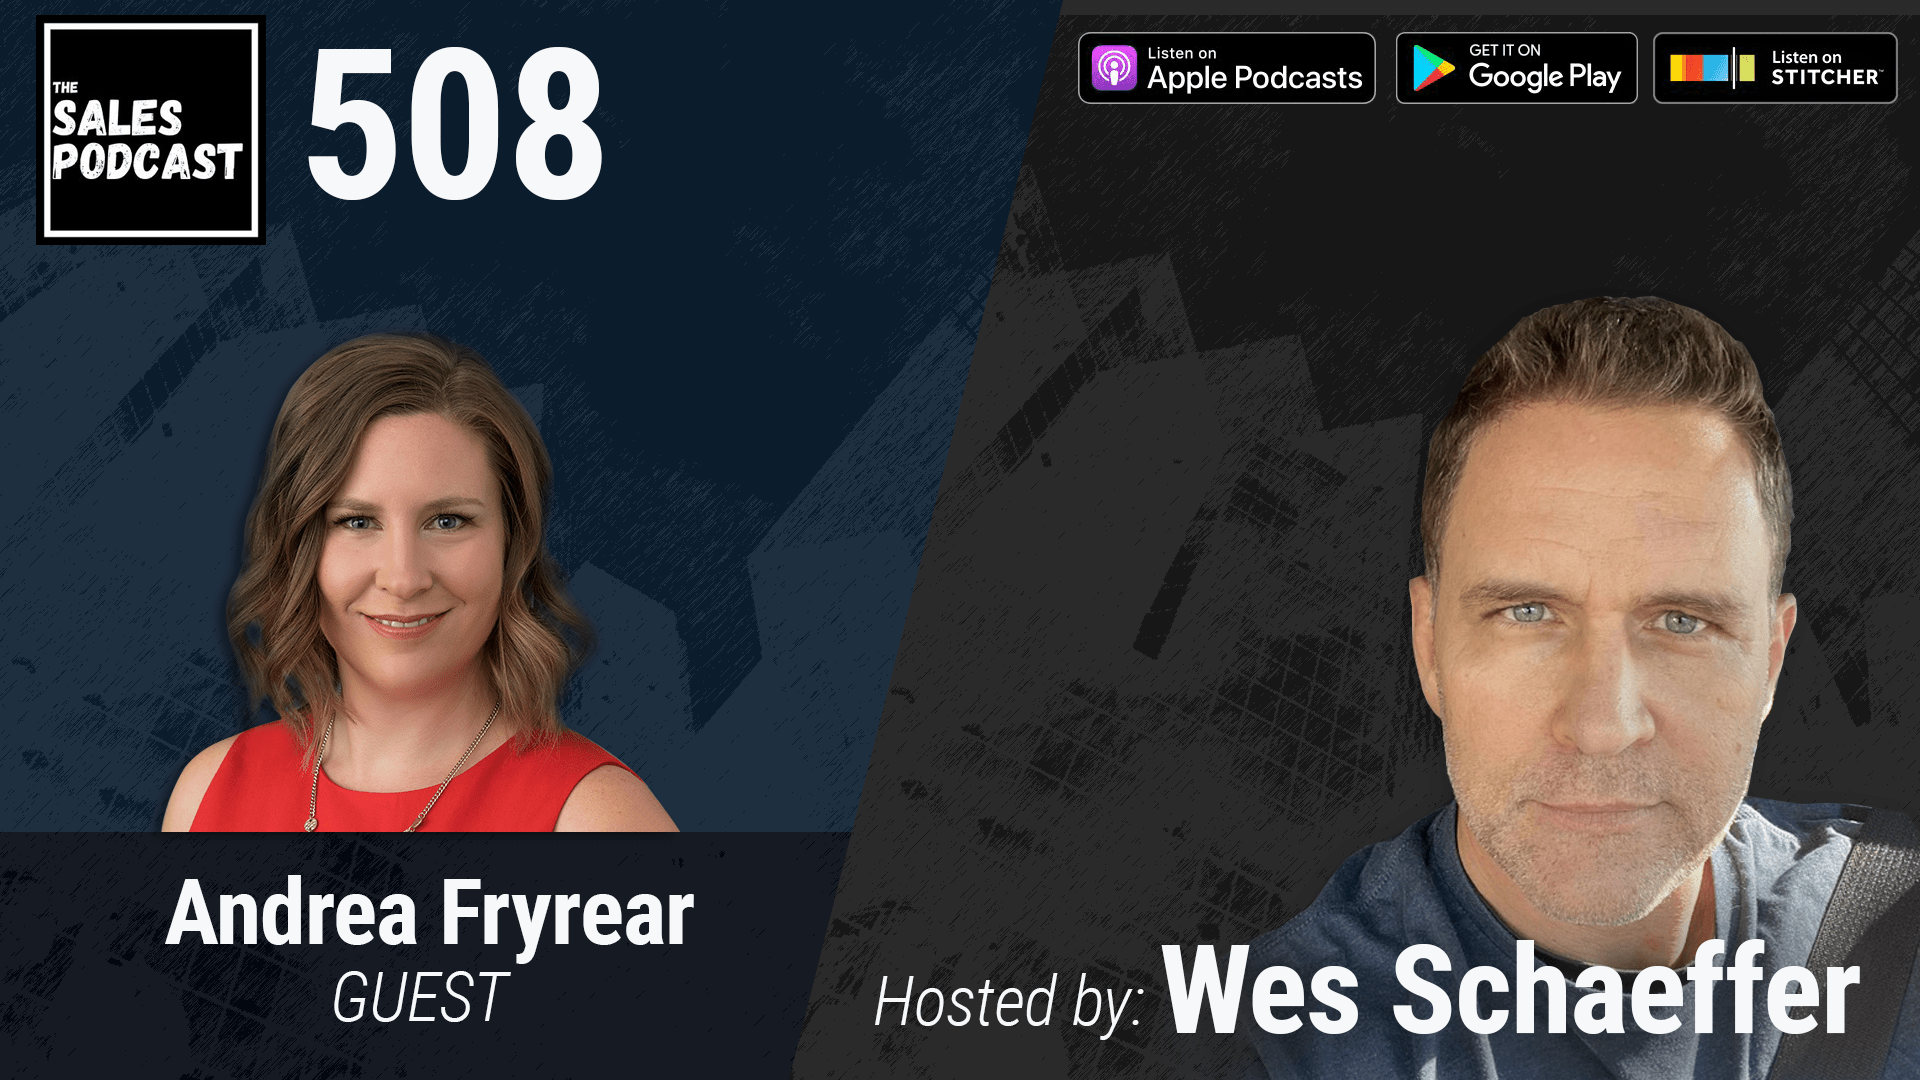 Do Agile Marketing Right With Entrepreneur Andrea Fryrear on The Sales Podcast with Wes Schaeffer, The Sales Whisperer®